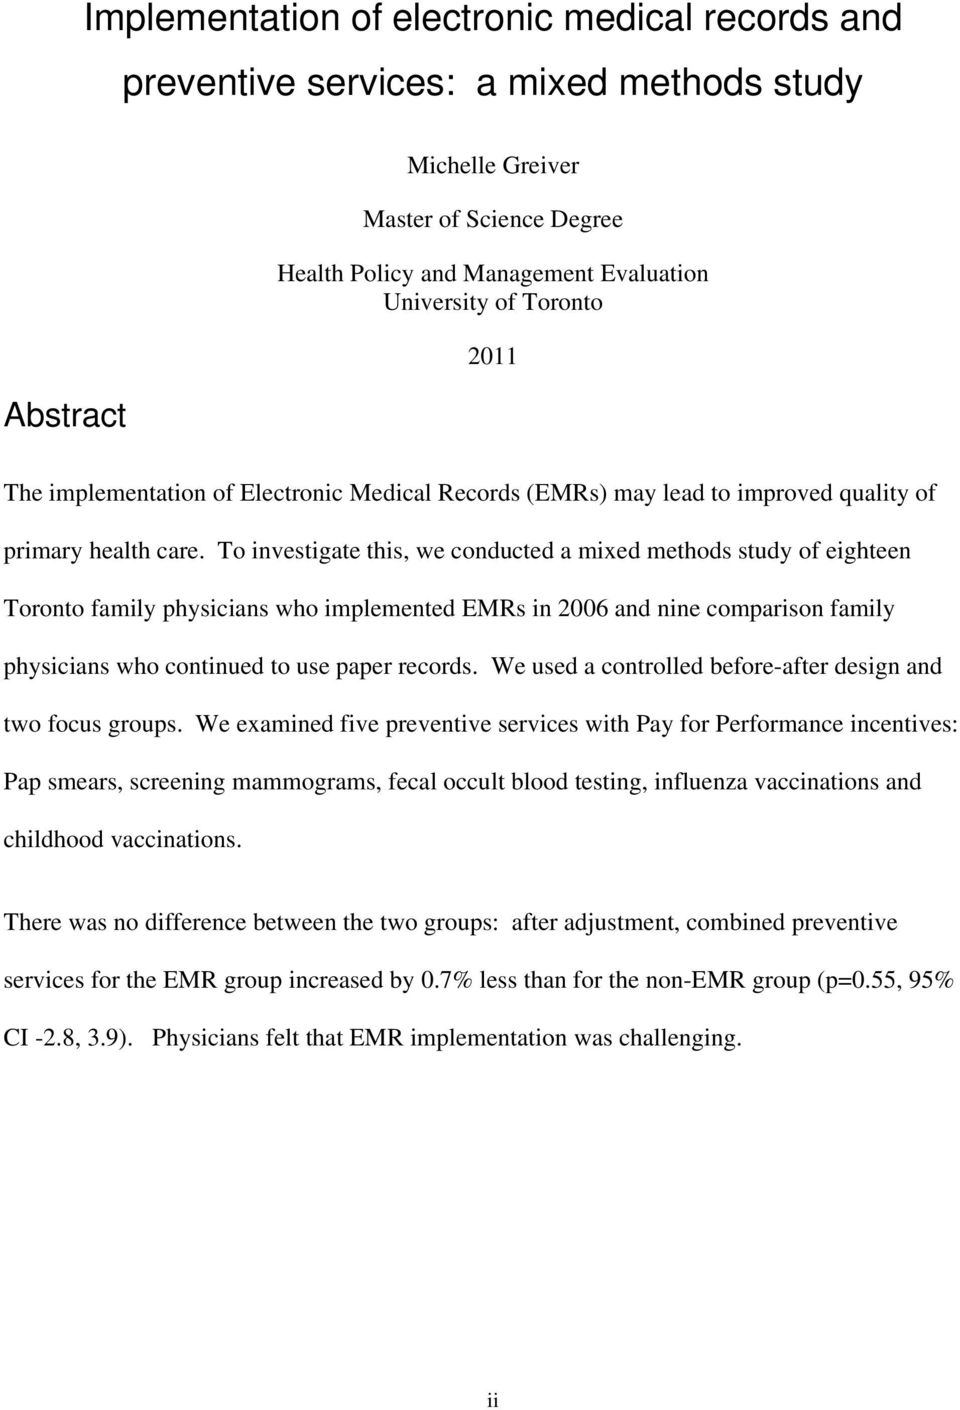 To investigate this, we conducted a mixed methods study of eighteen Toronto family physicians who implemented EMRs in 2006 and nine comparison family physicians who continued to use paper records.